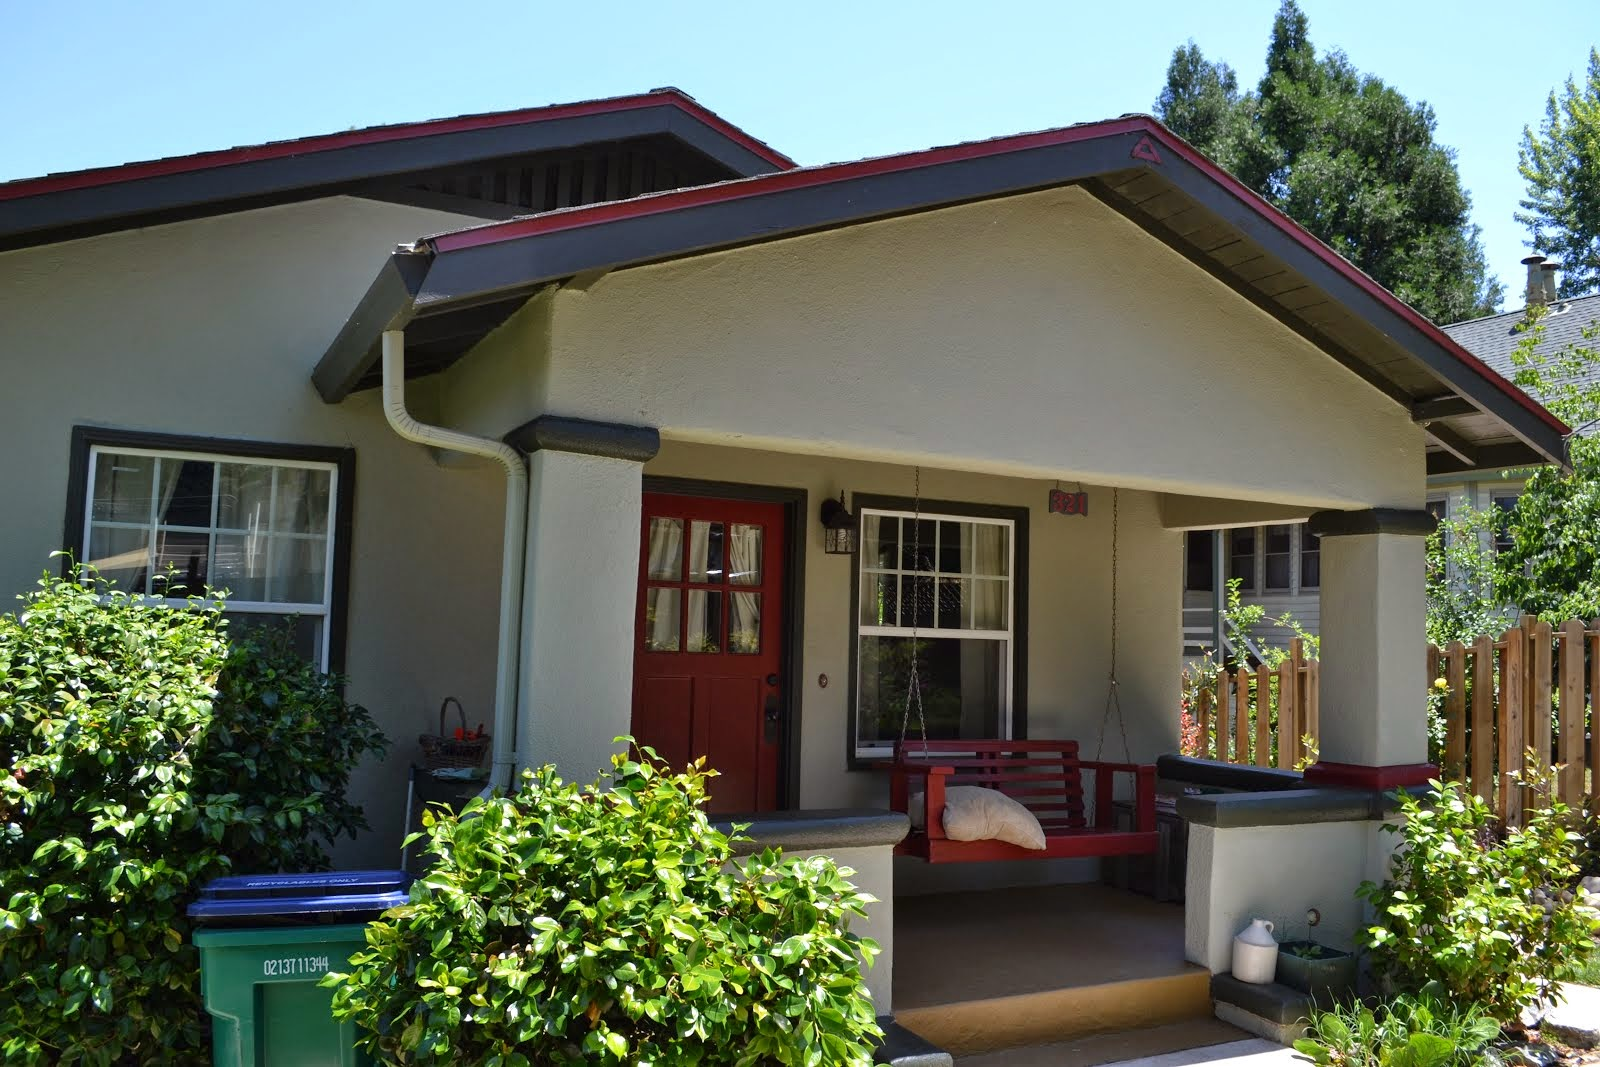 SOLD - DOWNTOWN GRASS VALLEY HOME FOR SALE